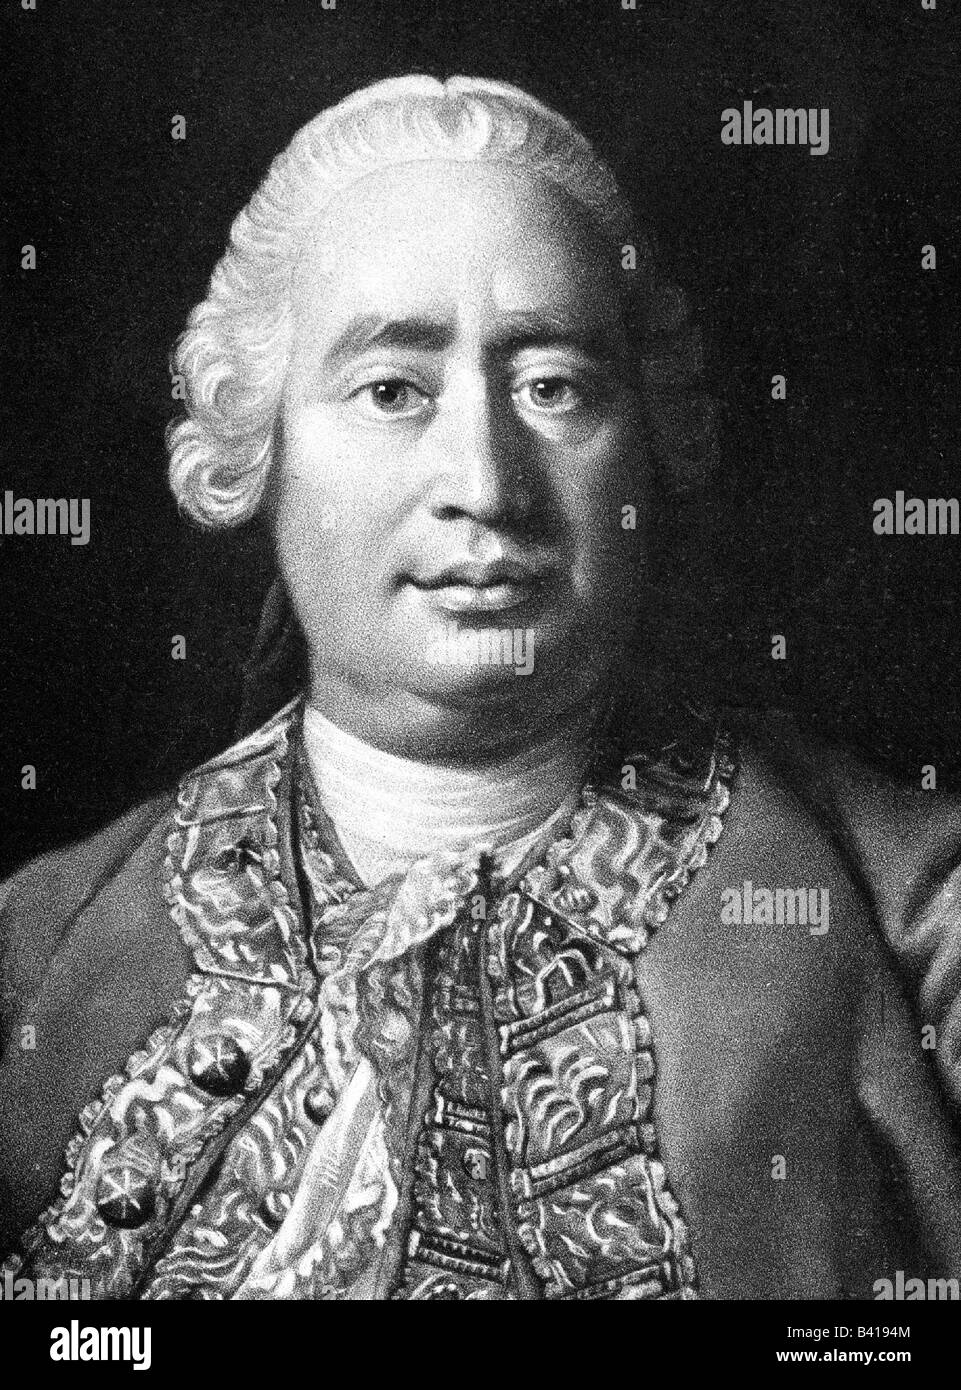 a biography of david hume a scottish philosopher historian economist and essayist Name instructor course date biography of david hume david hume is a well-known scottish philosopher, historian, economist and essayist born on may 7th, in edinburg, scotland.